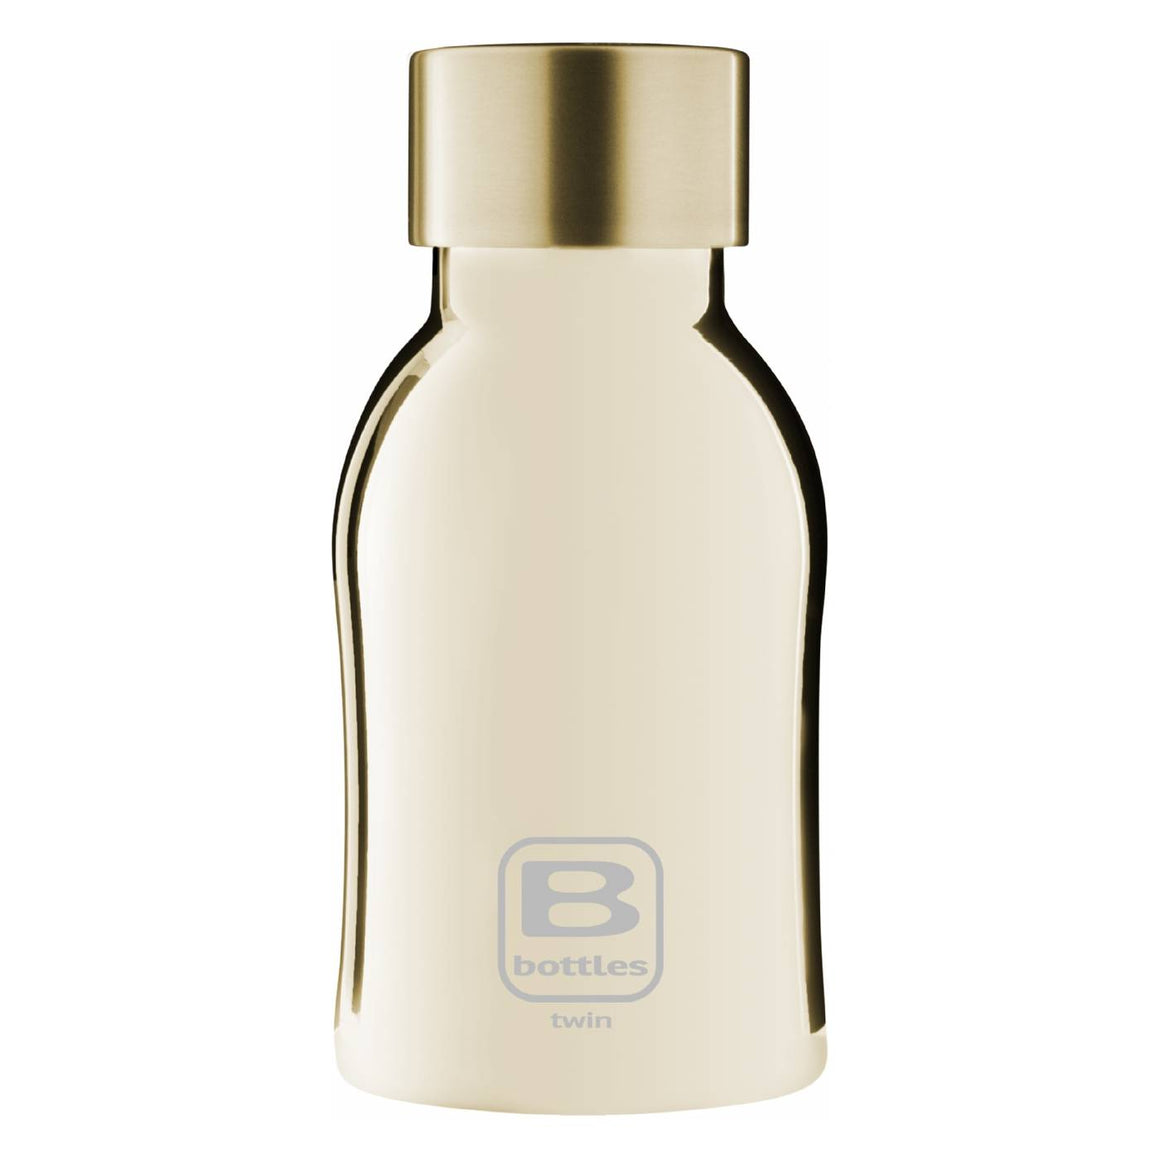 B BOTTLE YELLOW GOLD LUX